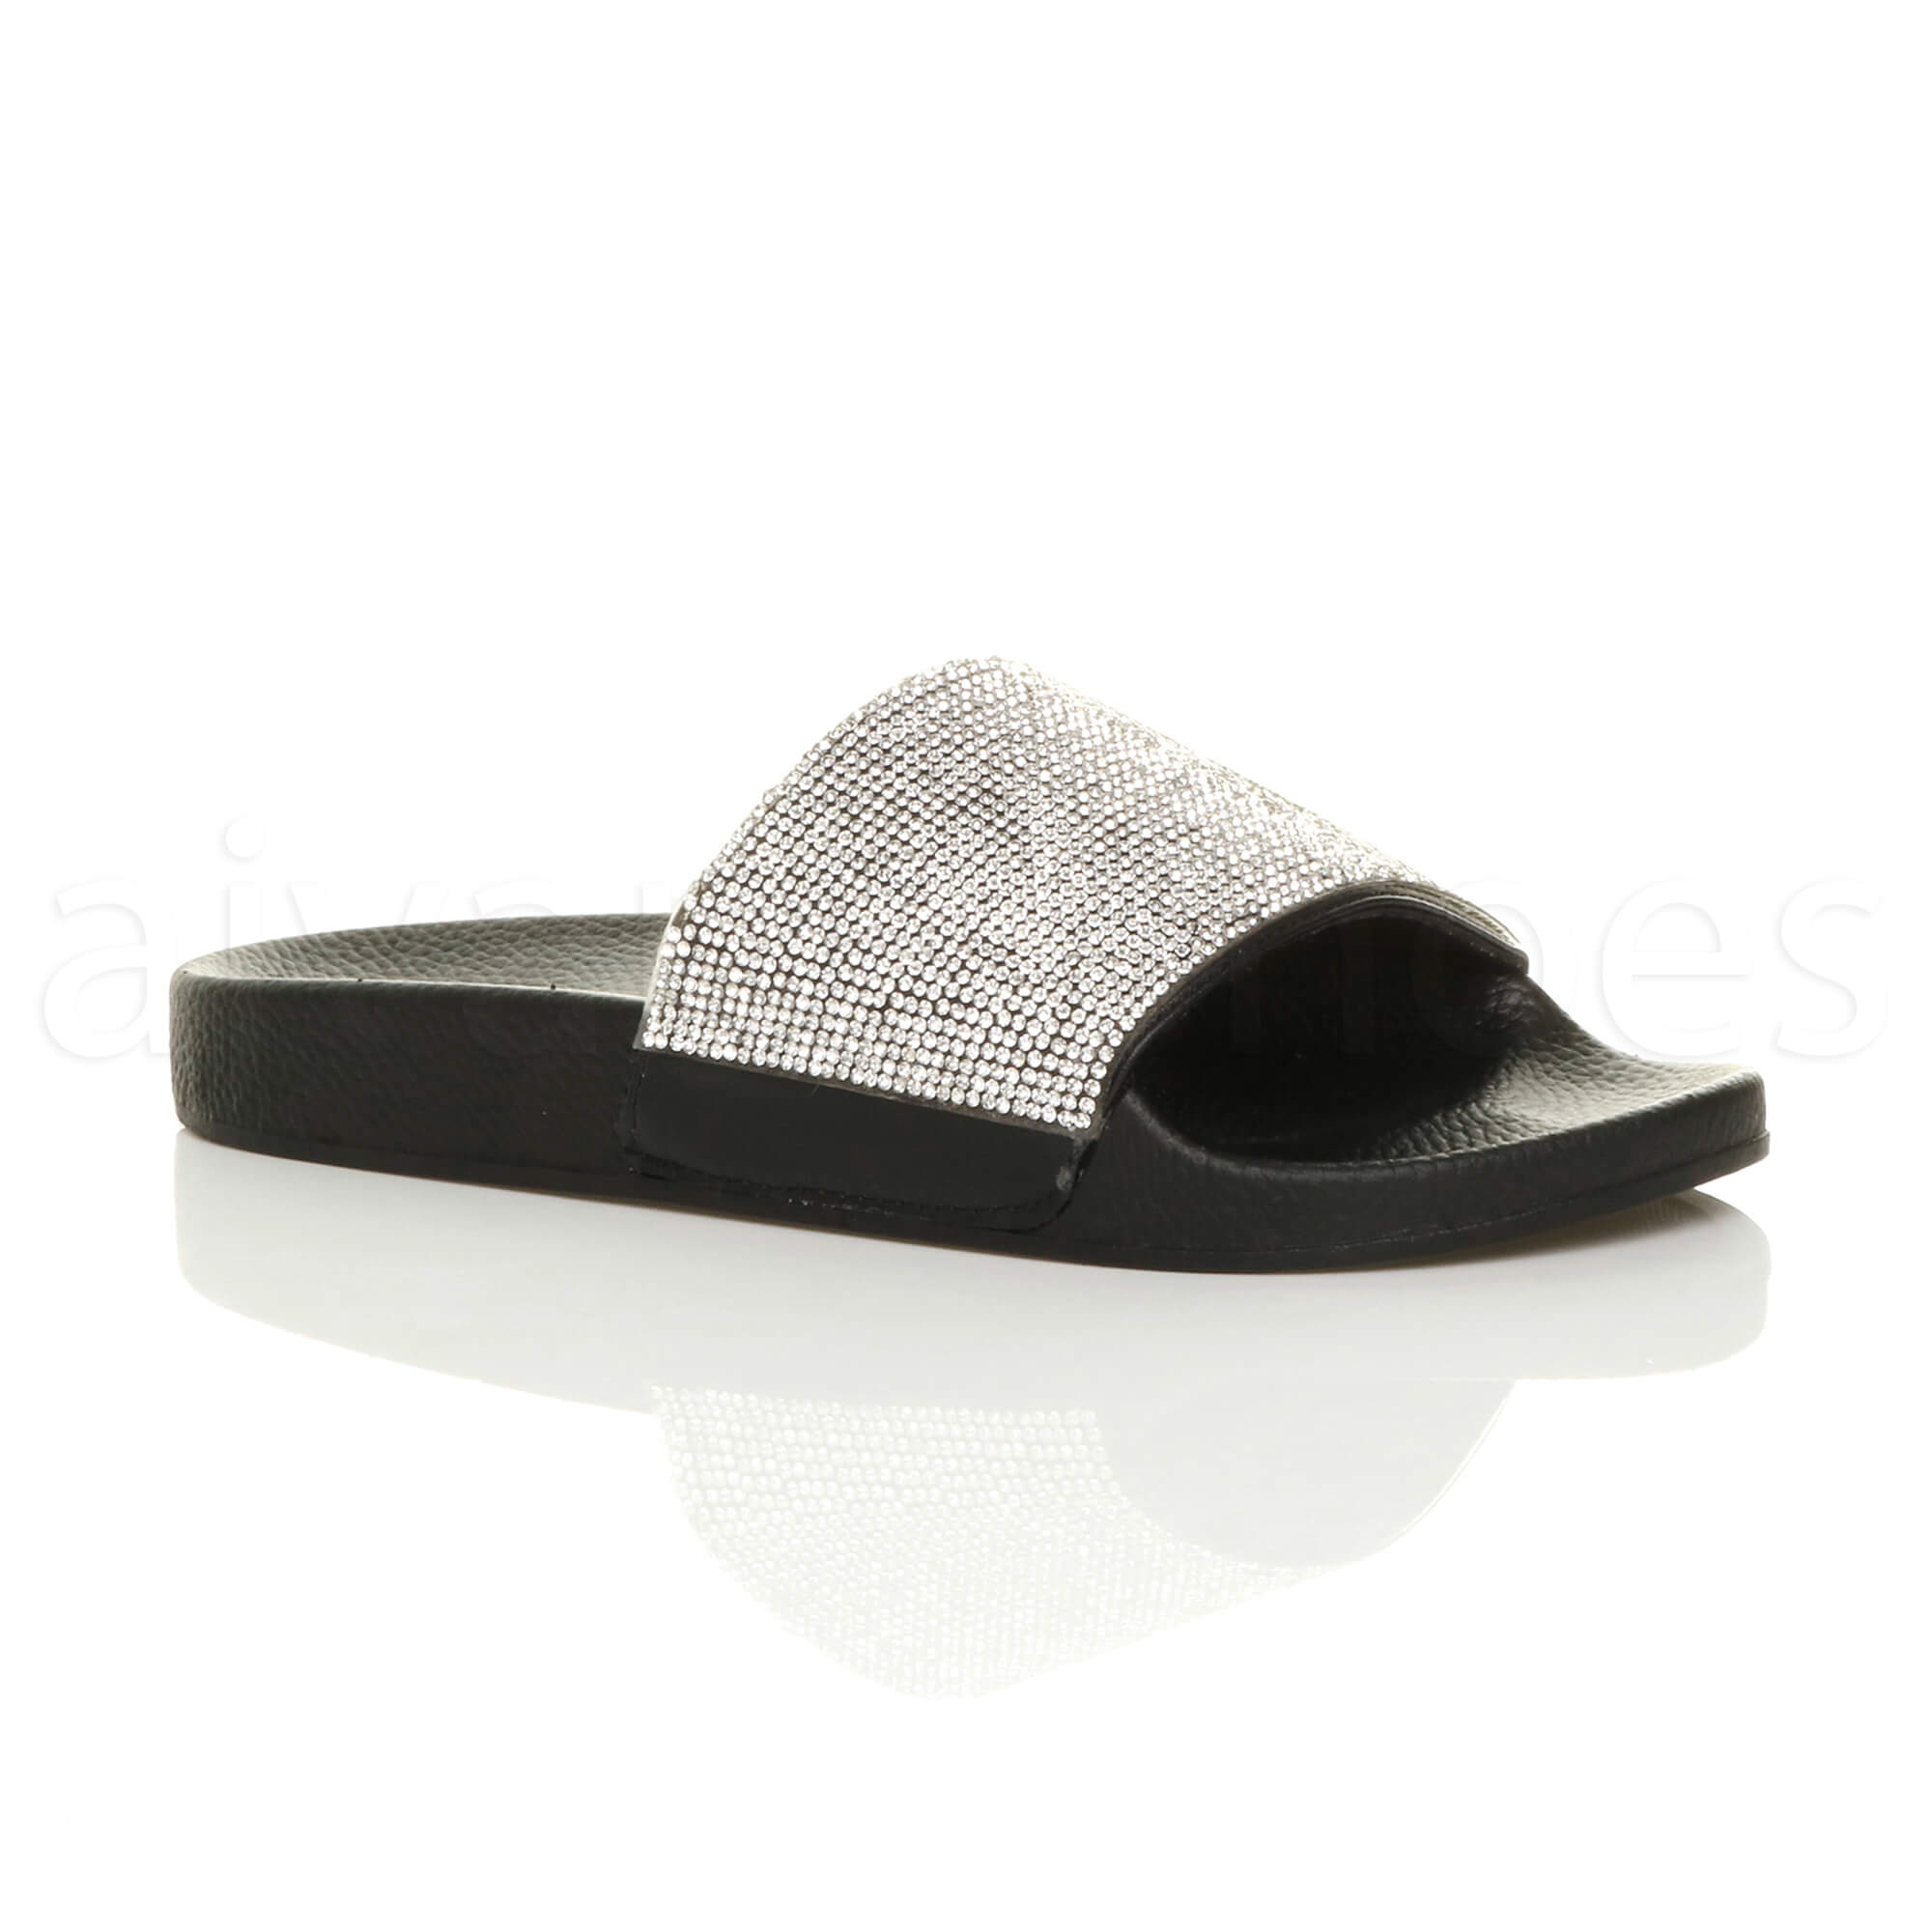 9ff268995 WOMENS LADIES FLAT DIAMANTE SPARKLY SLIDERS SANDALS FLIP FLOPS SLIPPERS SIZE